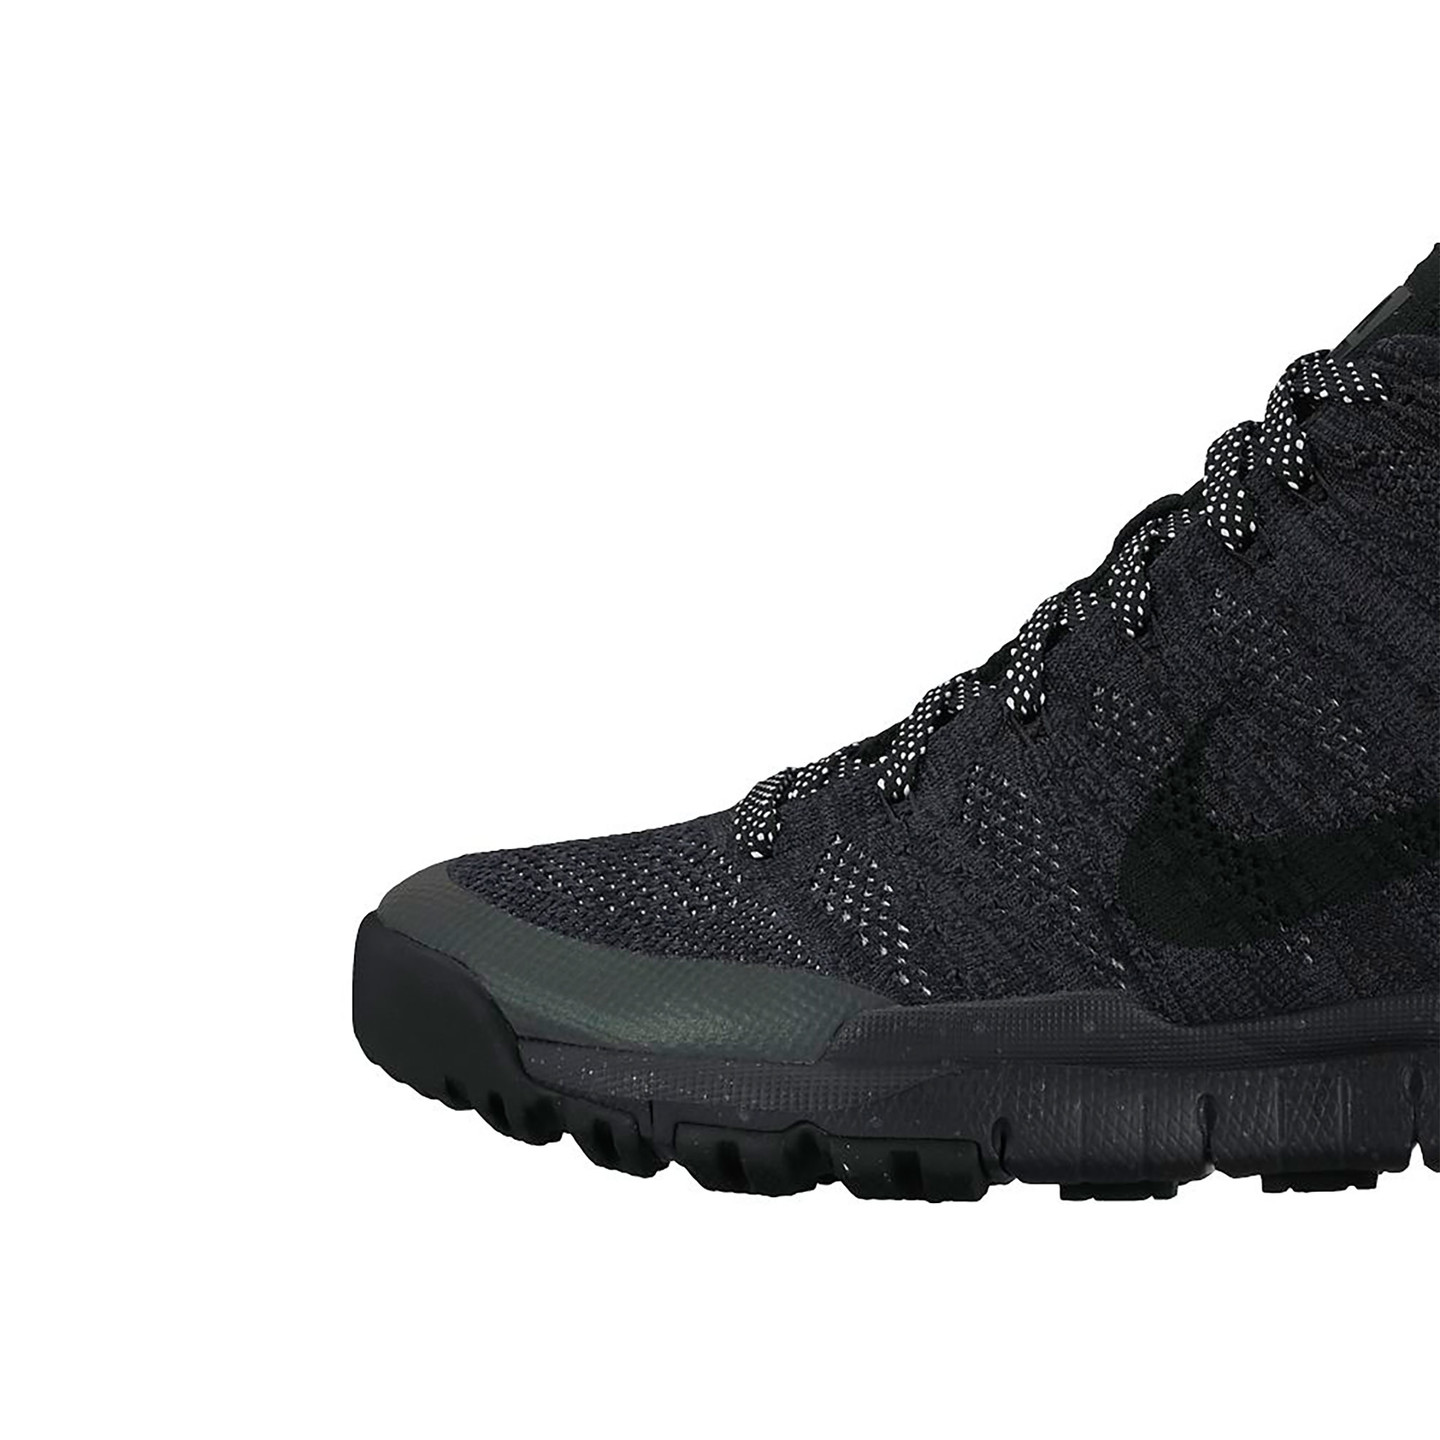 Nike Flyknit Trainer Chukka Sneakerboot Black / Anthracite 805092-001-44.5